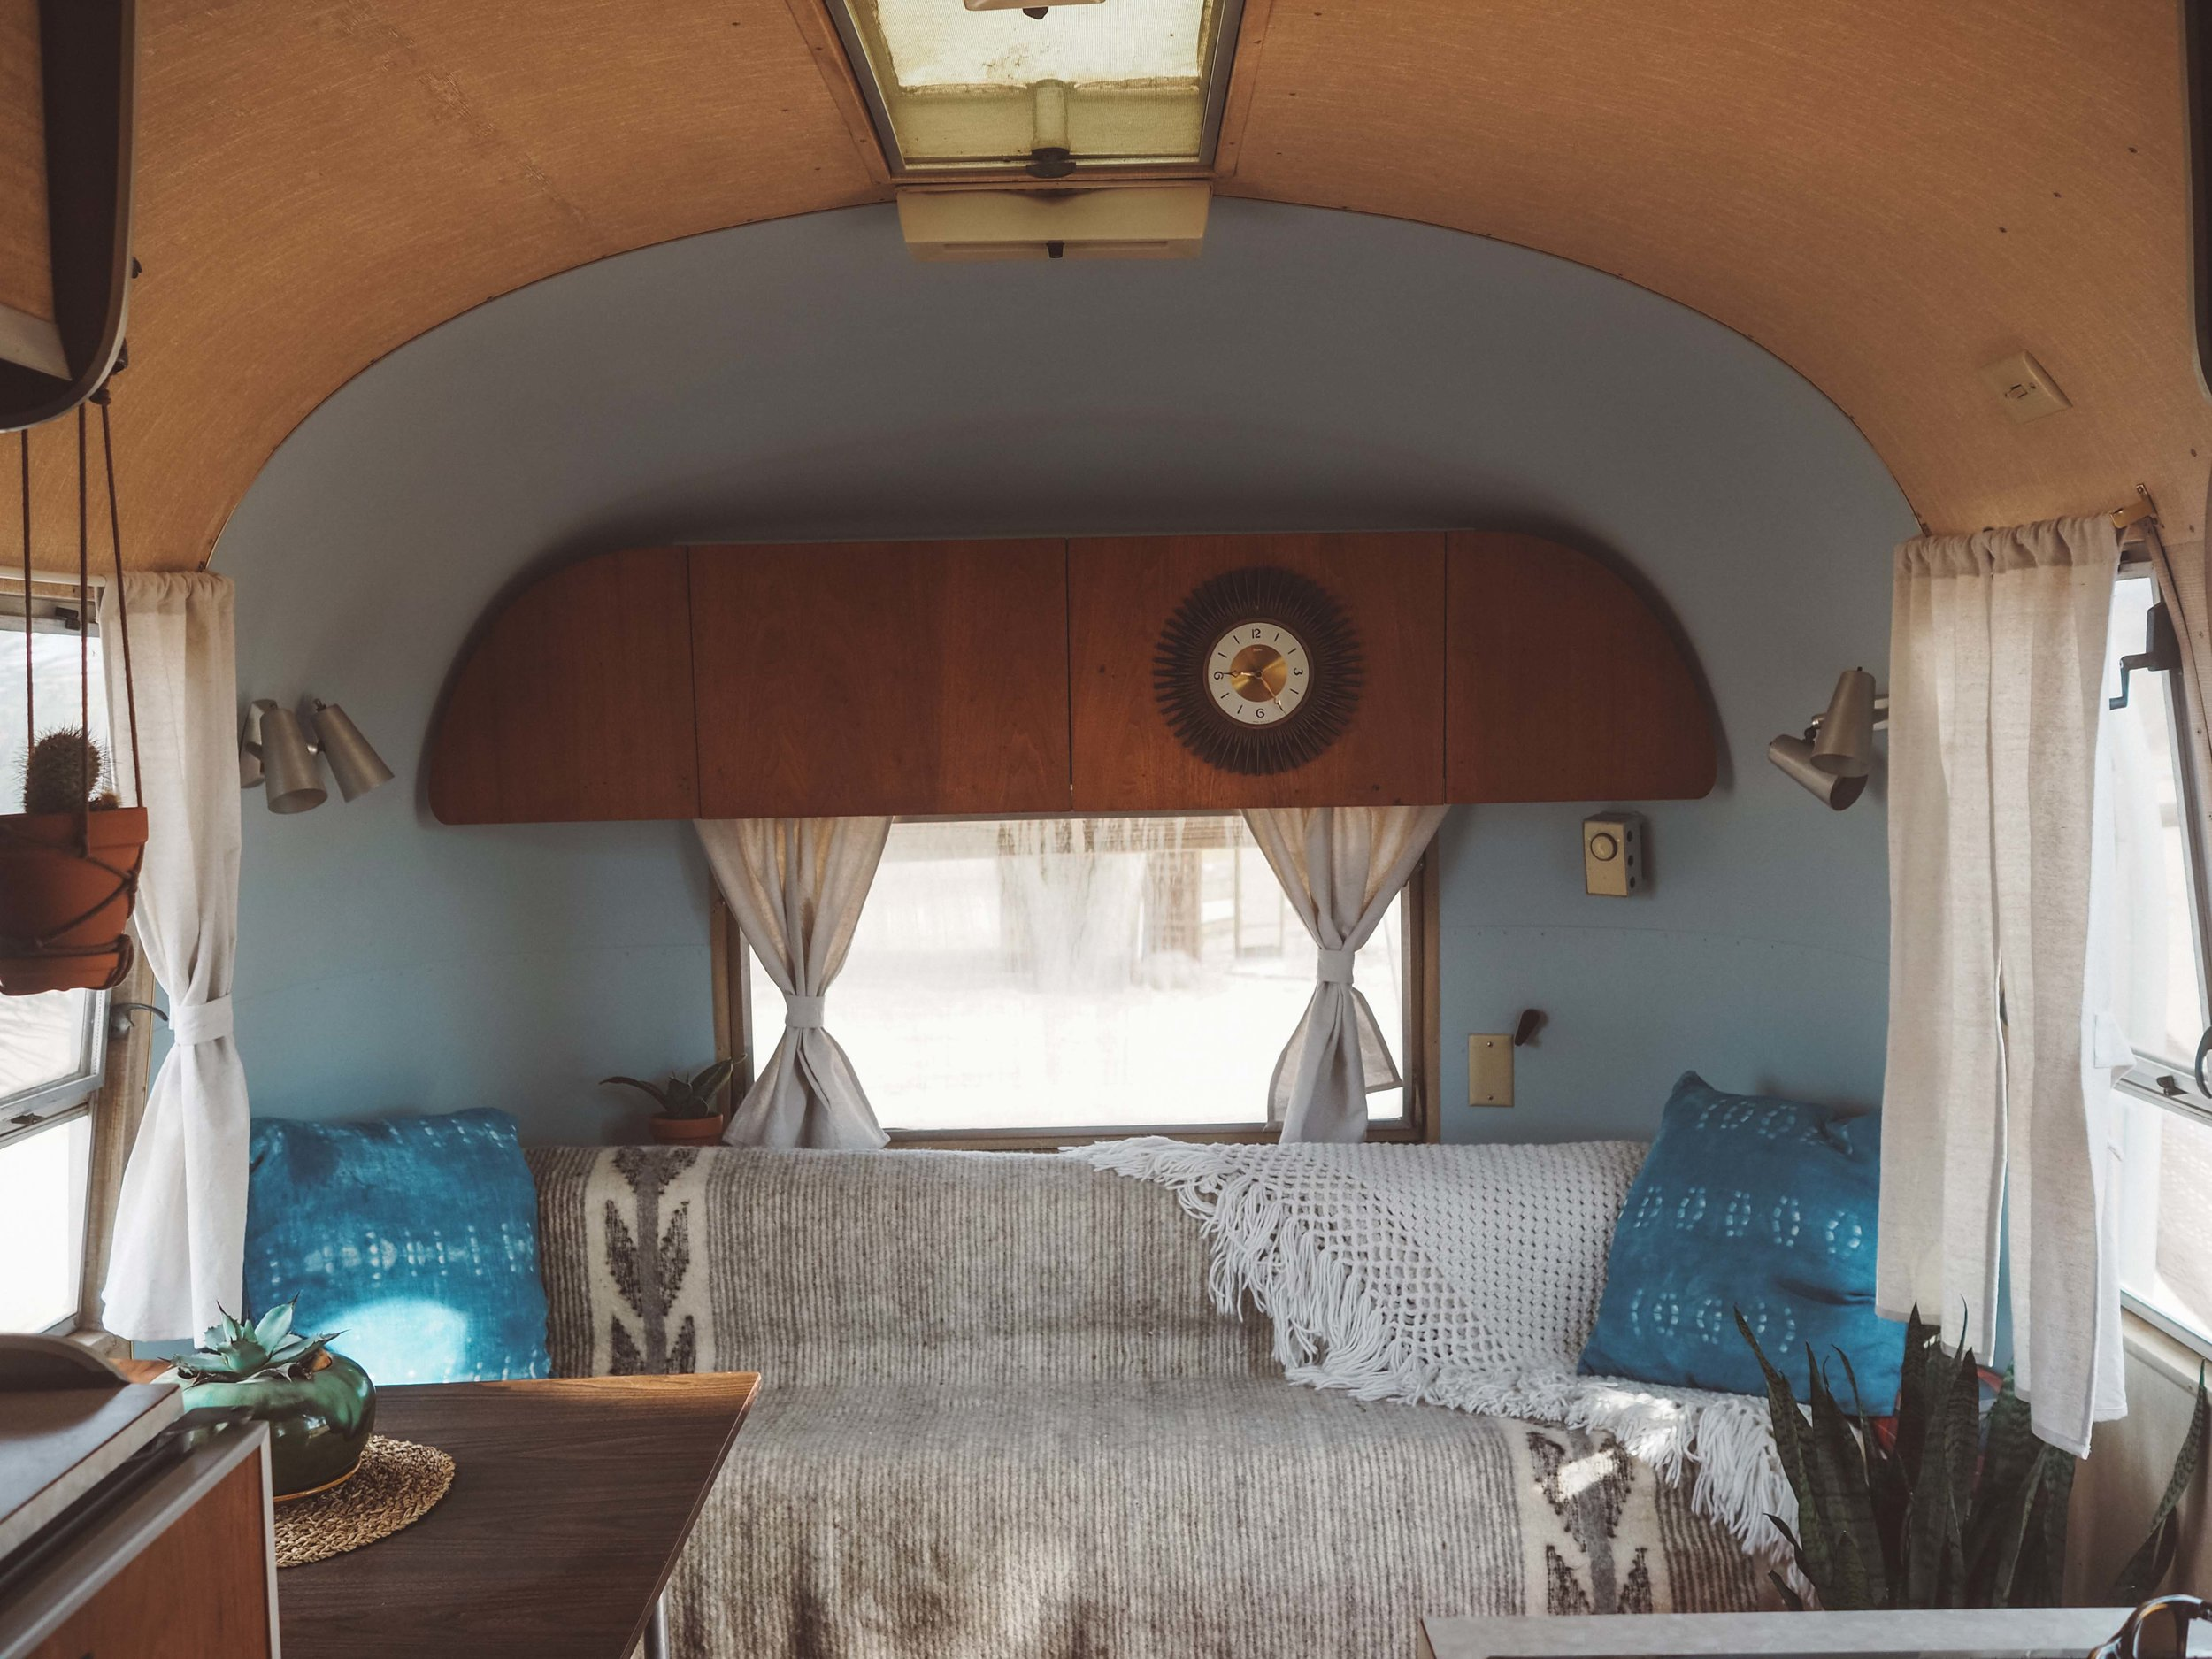 1964 Airstream interior